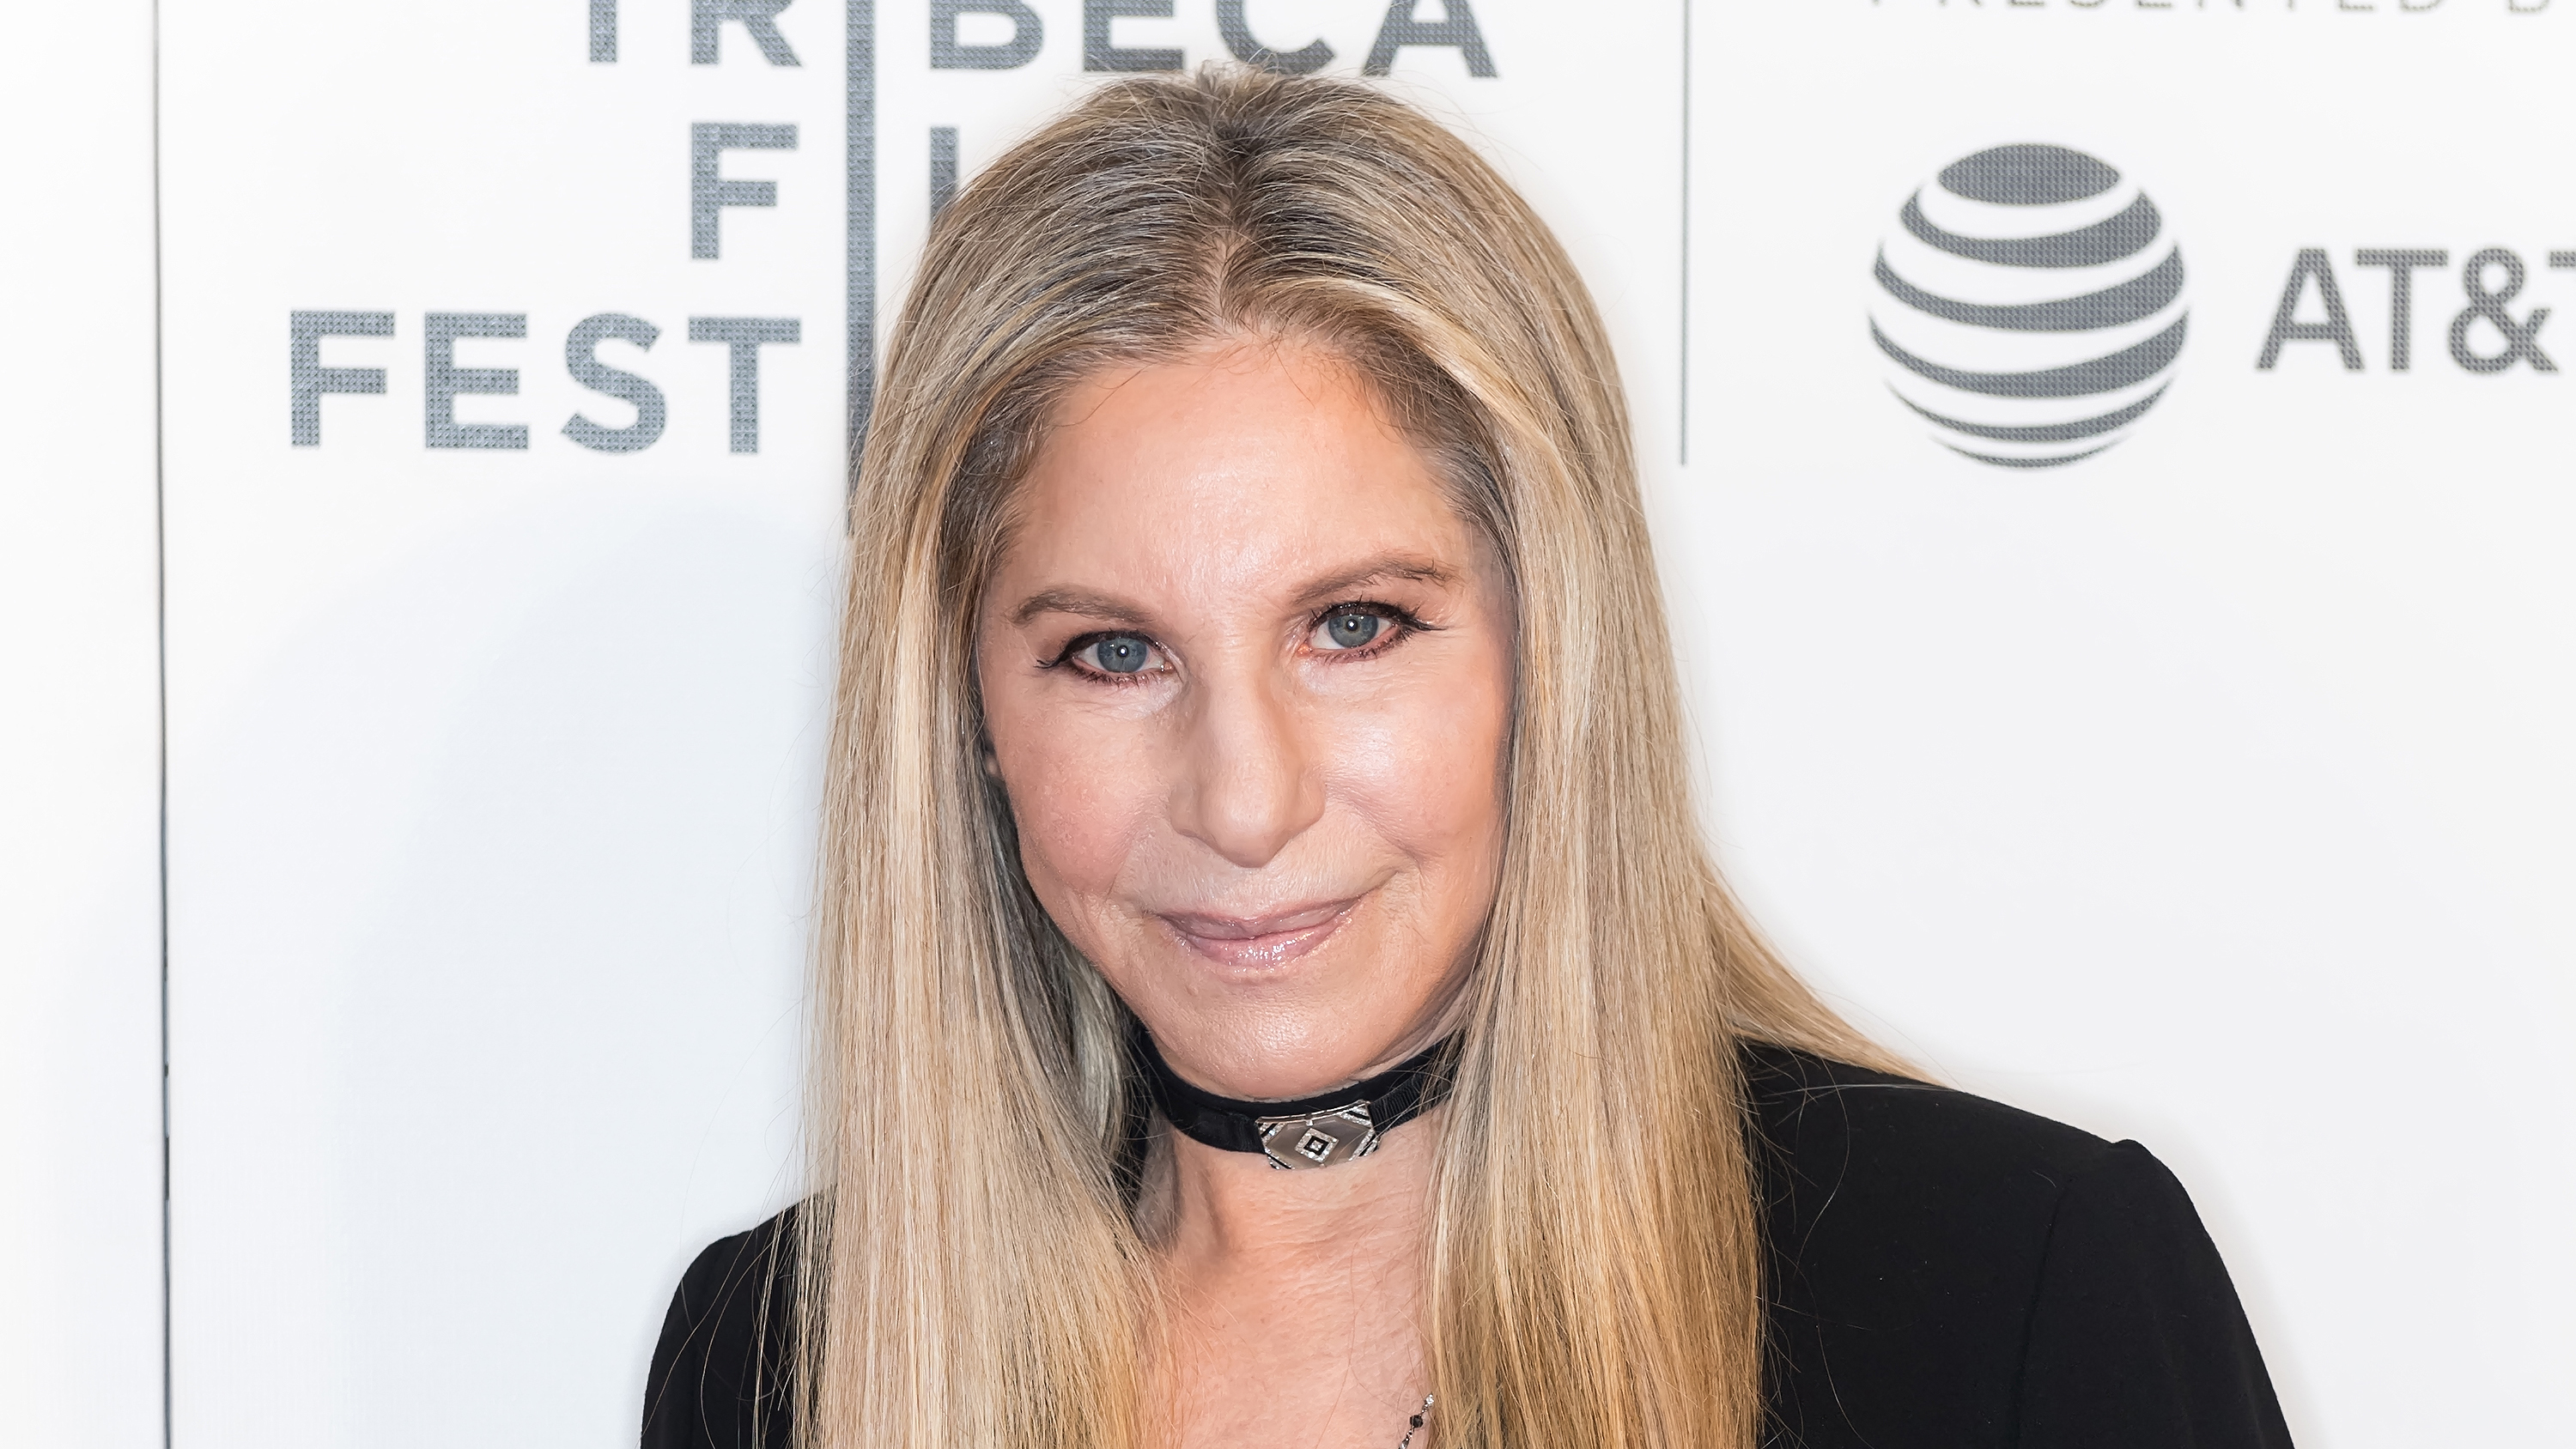 Barbra Streisand says she 'absolutely' believes Michael Jackson accusers thumbnail